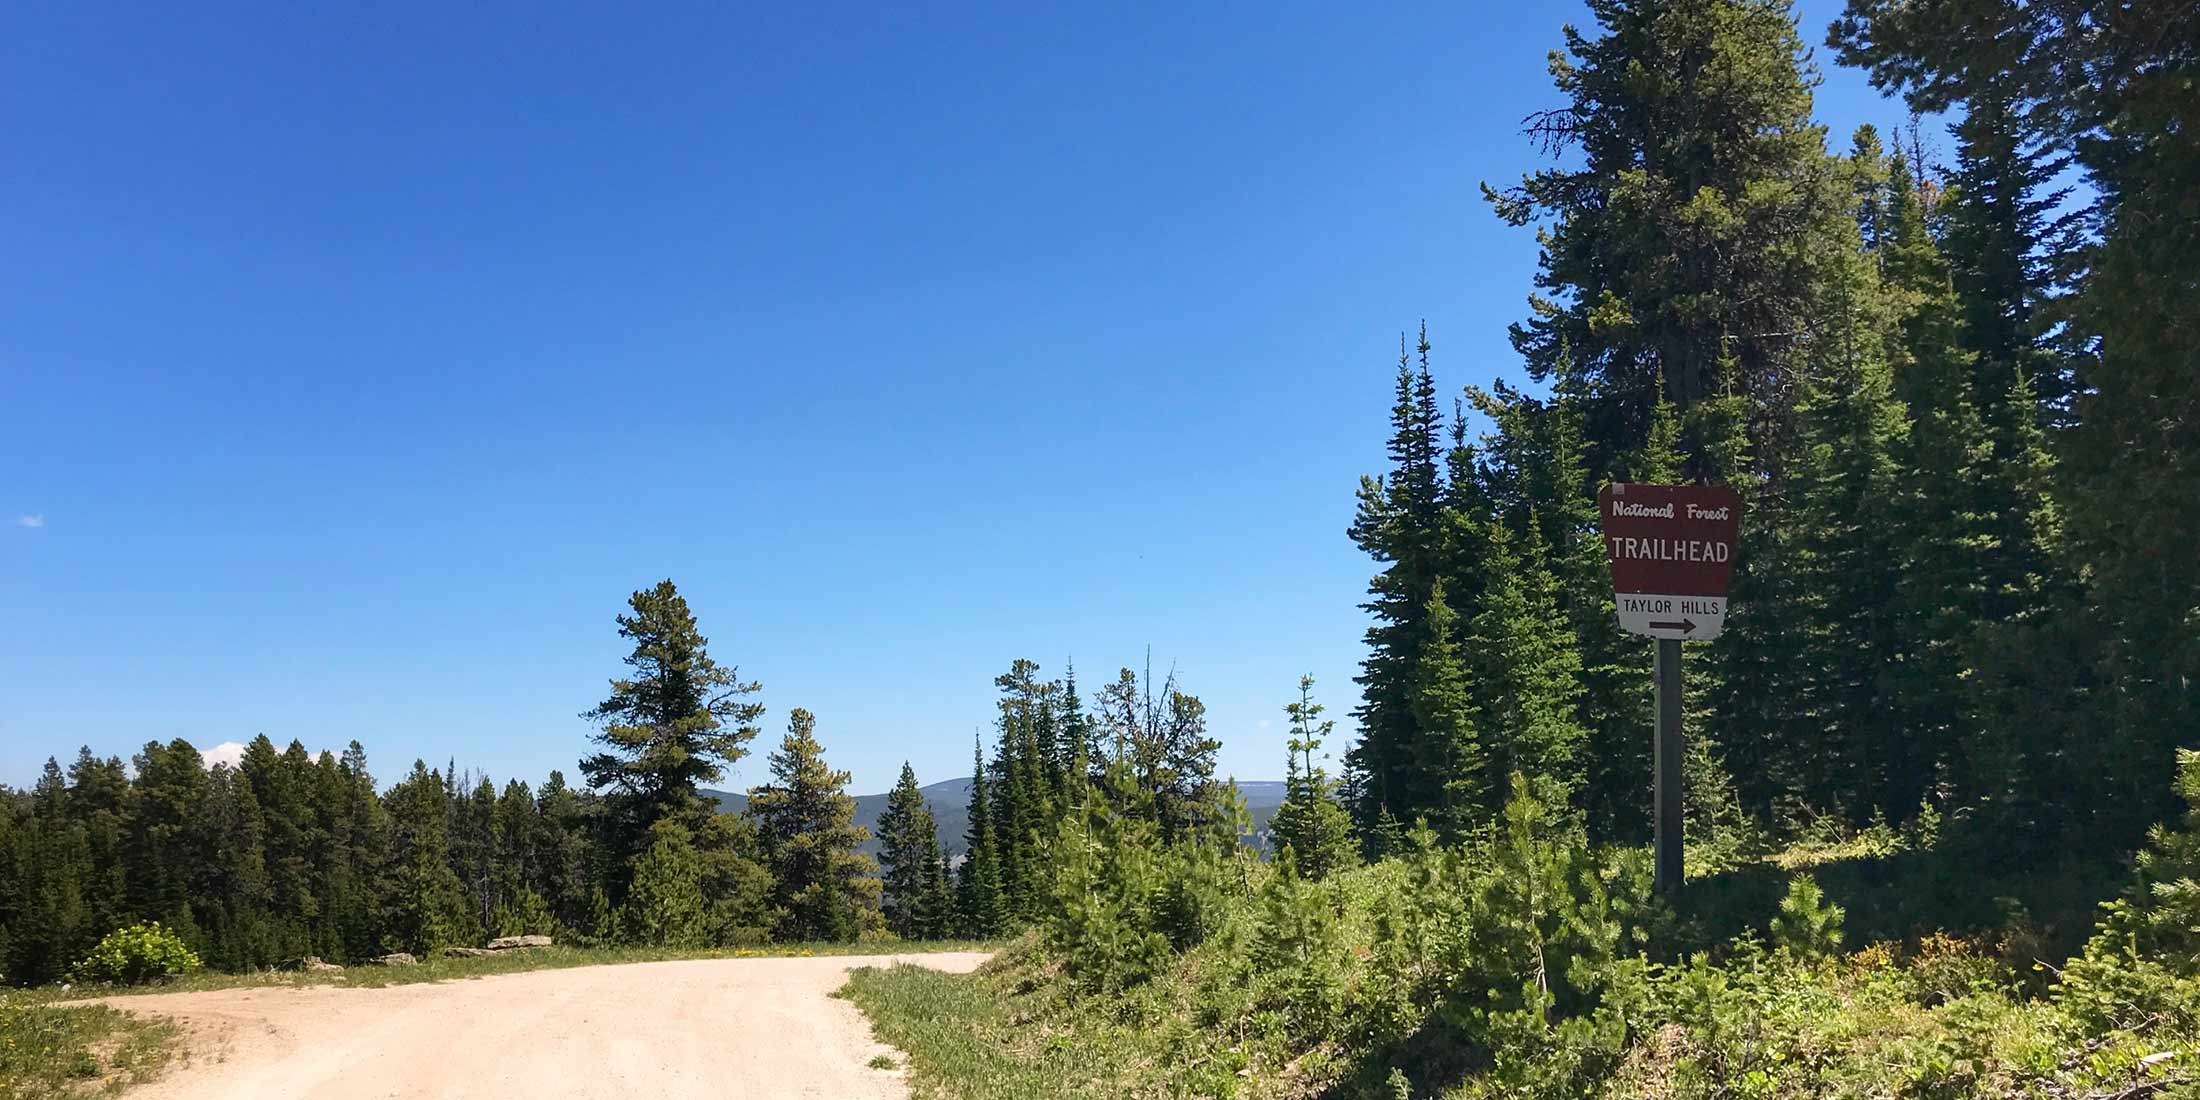 Motorcycle, ATV and Horseback trails located 24.6 miles from Highway 89 on Divide Road in the Little Belt Mountains.